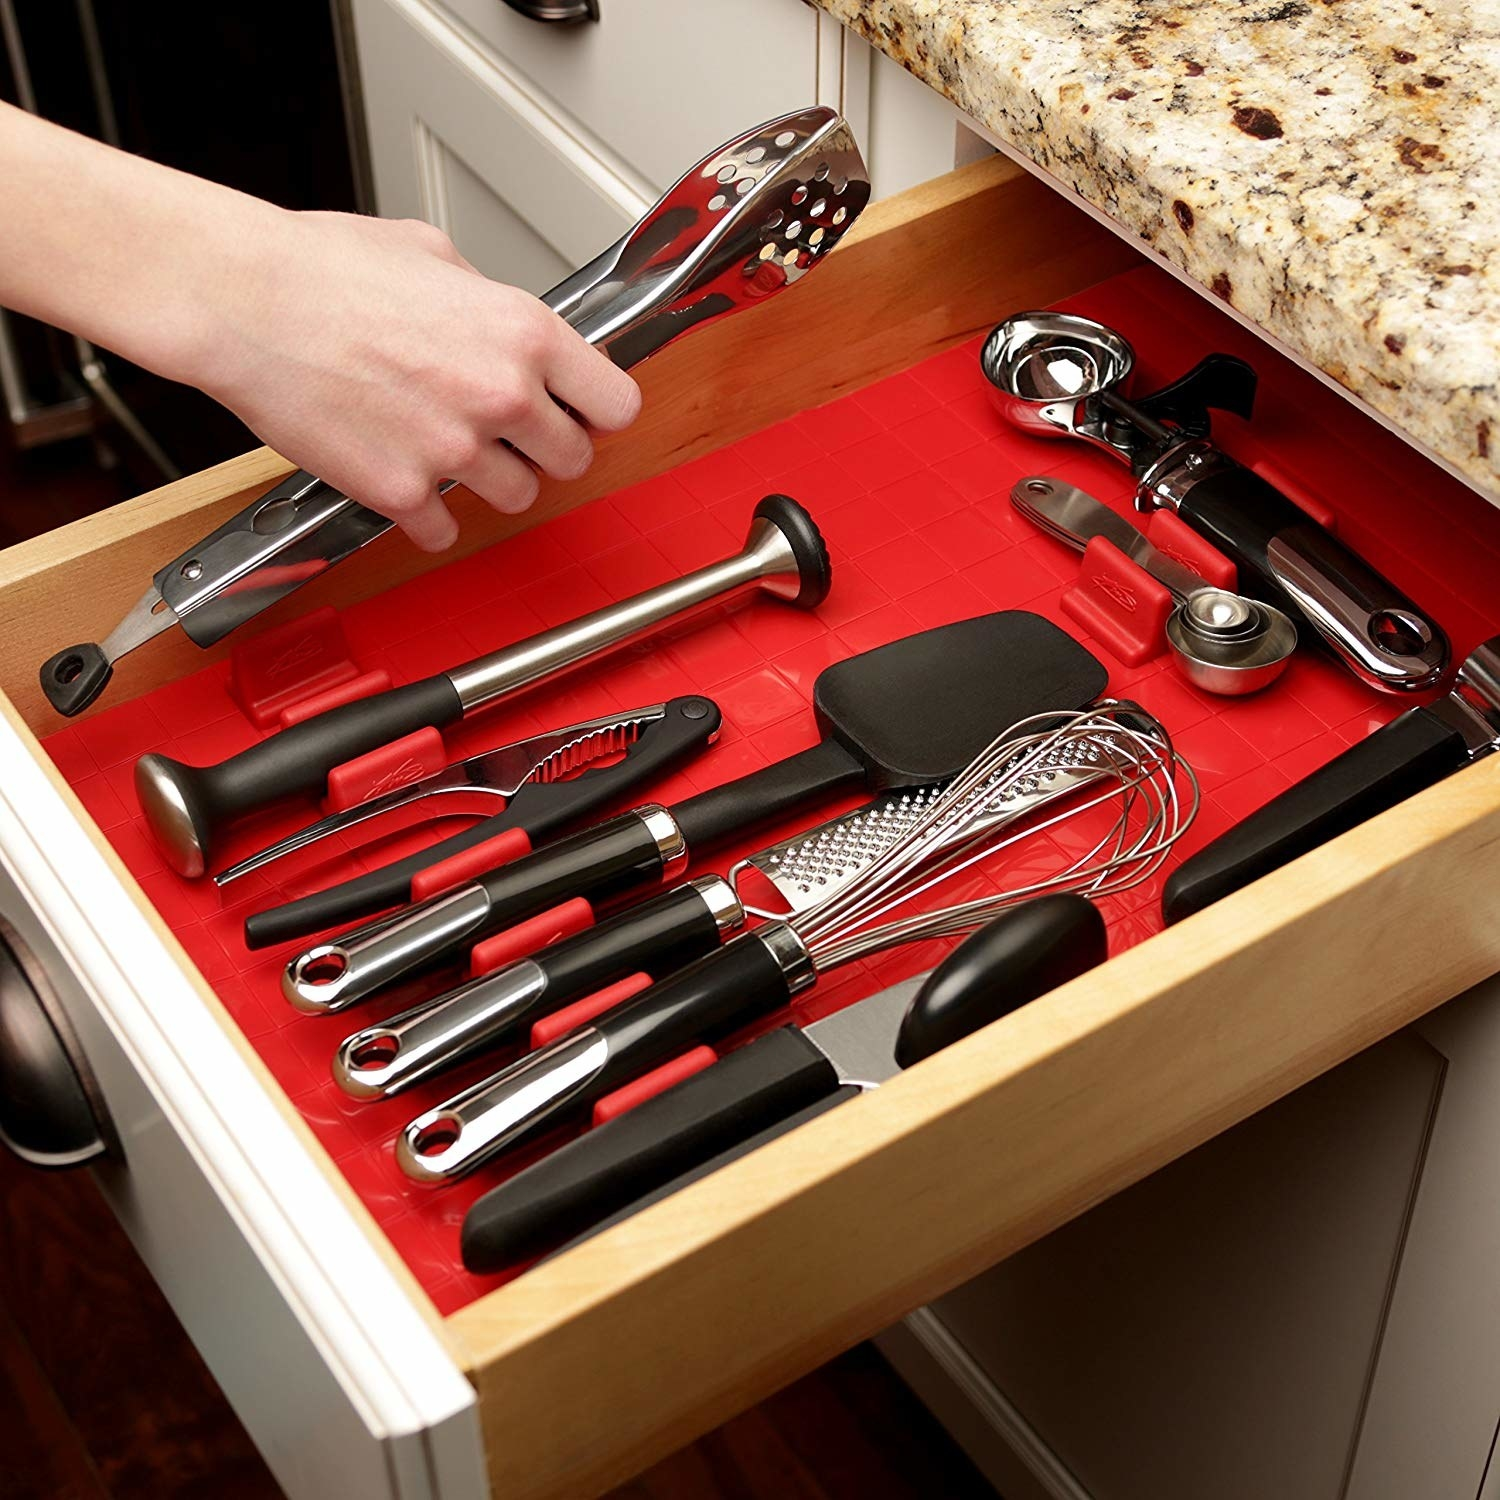 open kitchen drawer with red silicone organizer in it with movable organizer parts to change up design with your needs